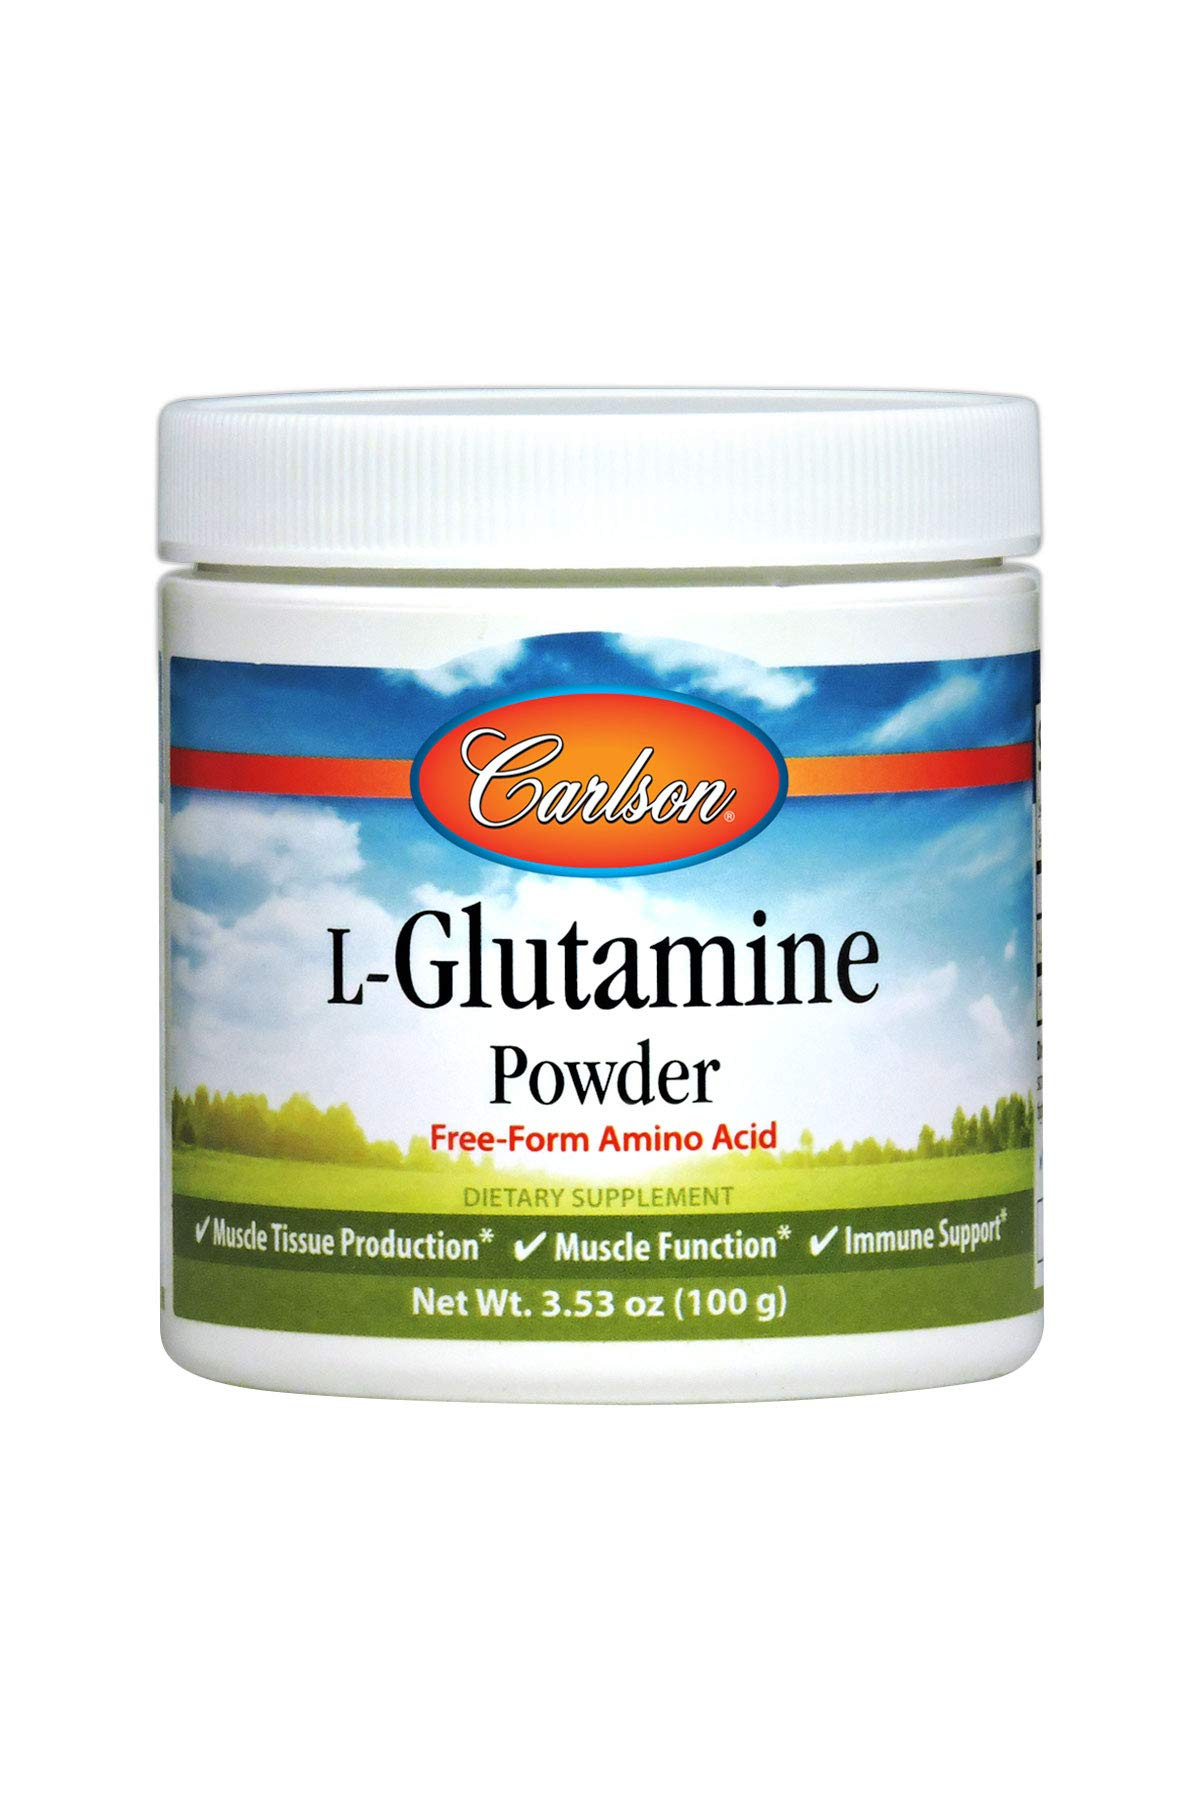 Carlson - L-Glutamine Powder, Free Form Amino Acid, Muscle Tissue Production & Function, Immune Support, 100 grams by Carlson